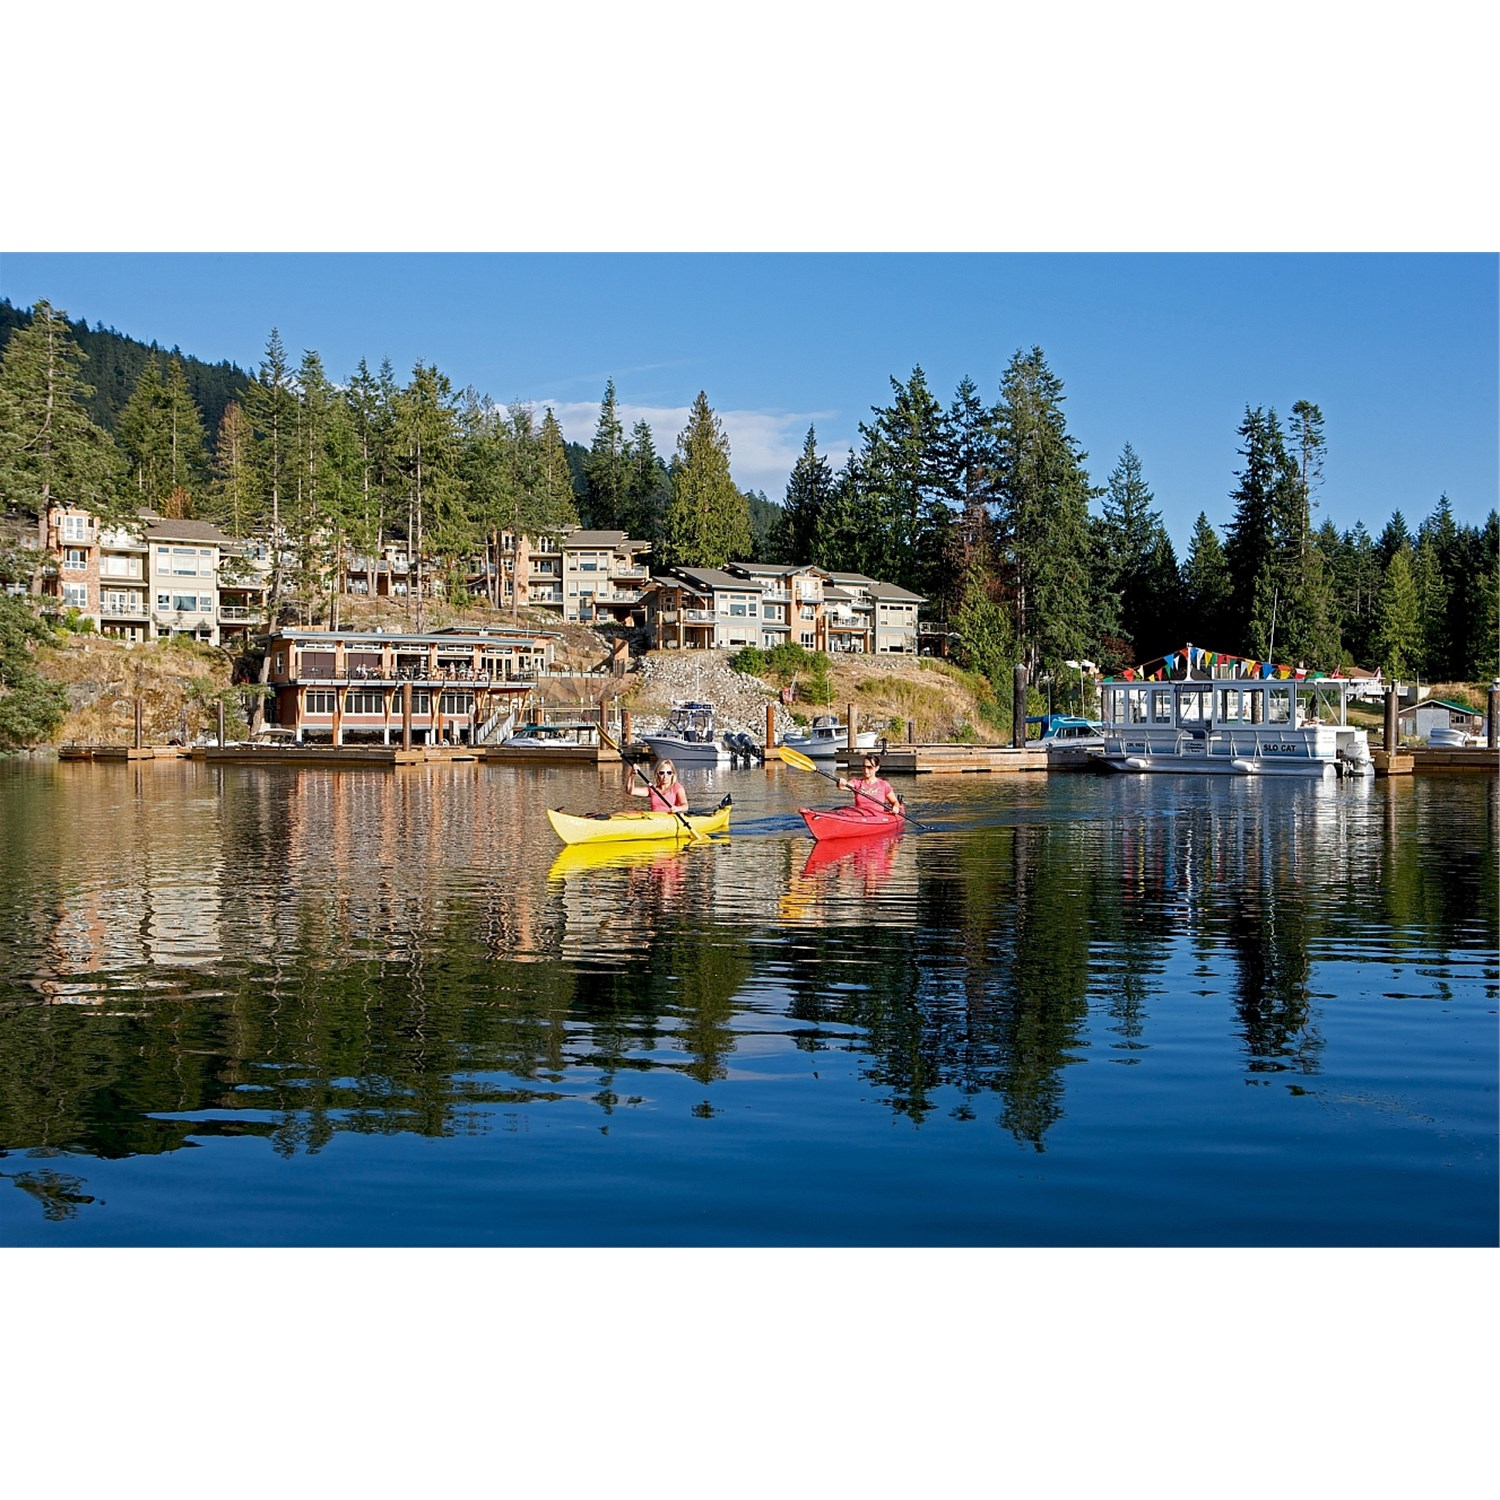 Painted Boat Resort Spa & Marina, Vancouver Island & The